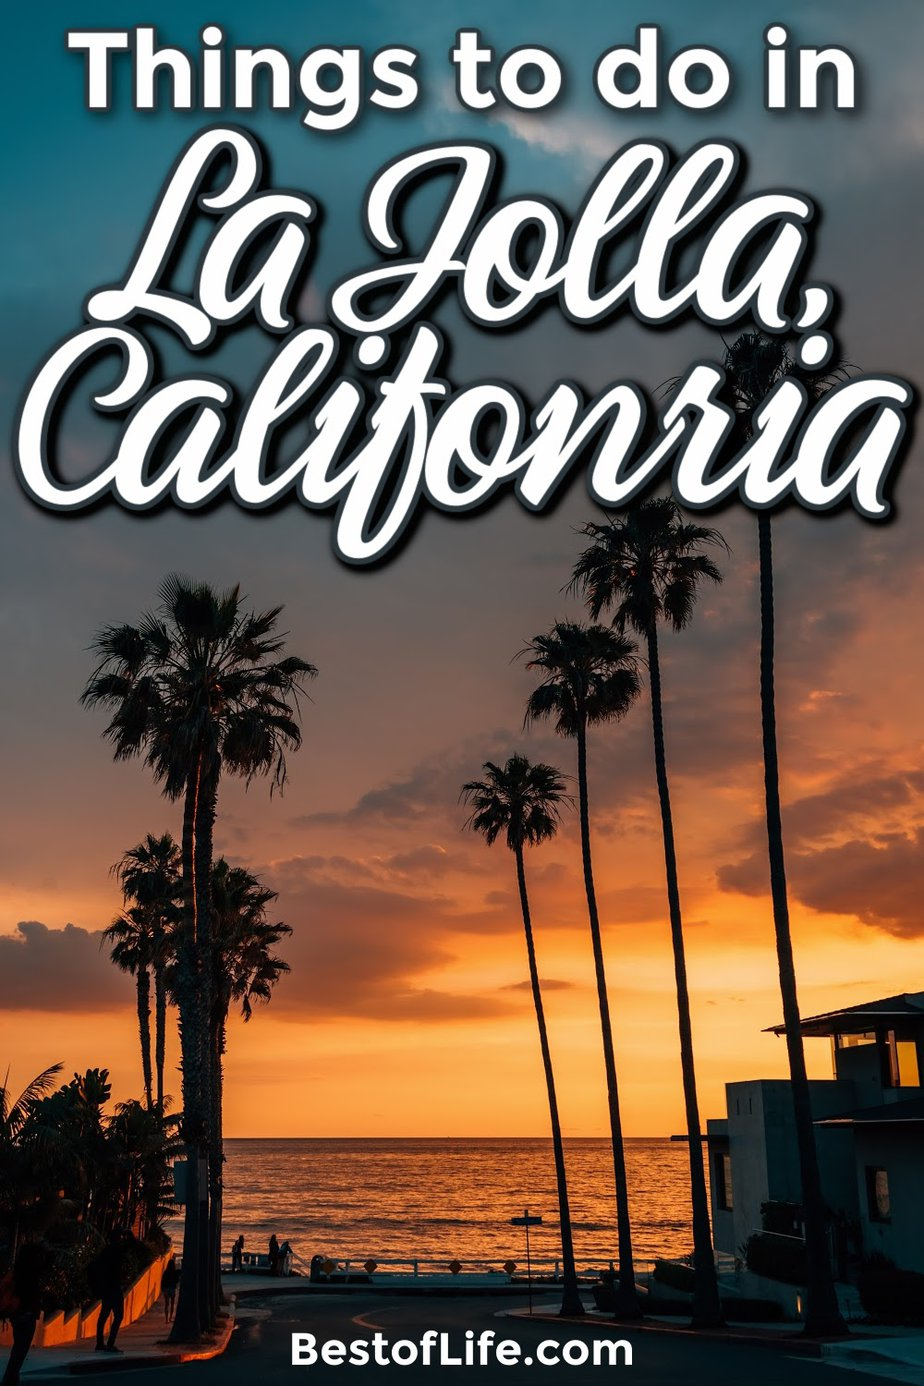 Plan your weekend around the best things to do in La Jolla California and discover what makes the jewel city shine as bright as it does. La Jolla Travel Tips  Things to do in California   Things to do in SoCal   Things to do in San Diego   San Diego Travel Tips   La Jolla Travel Tips   Summer Activities in San Diego #traveltip #lajolla via @thebestoflife